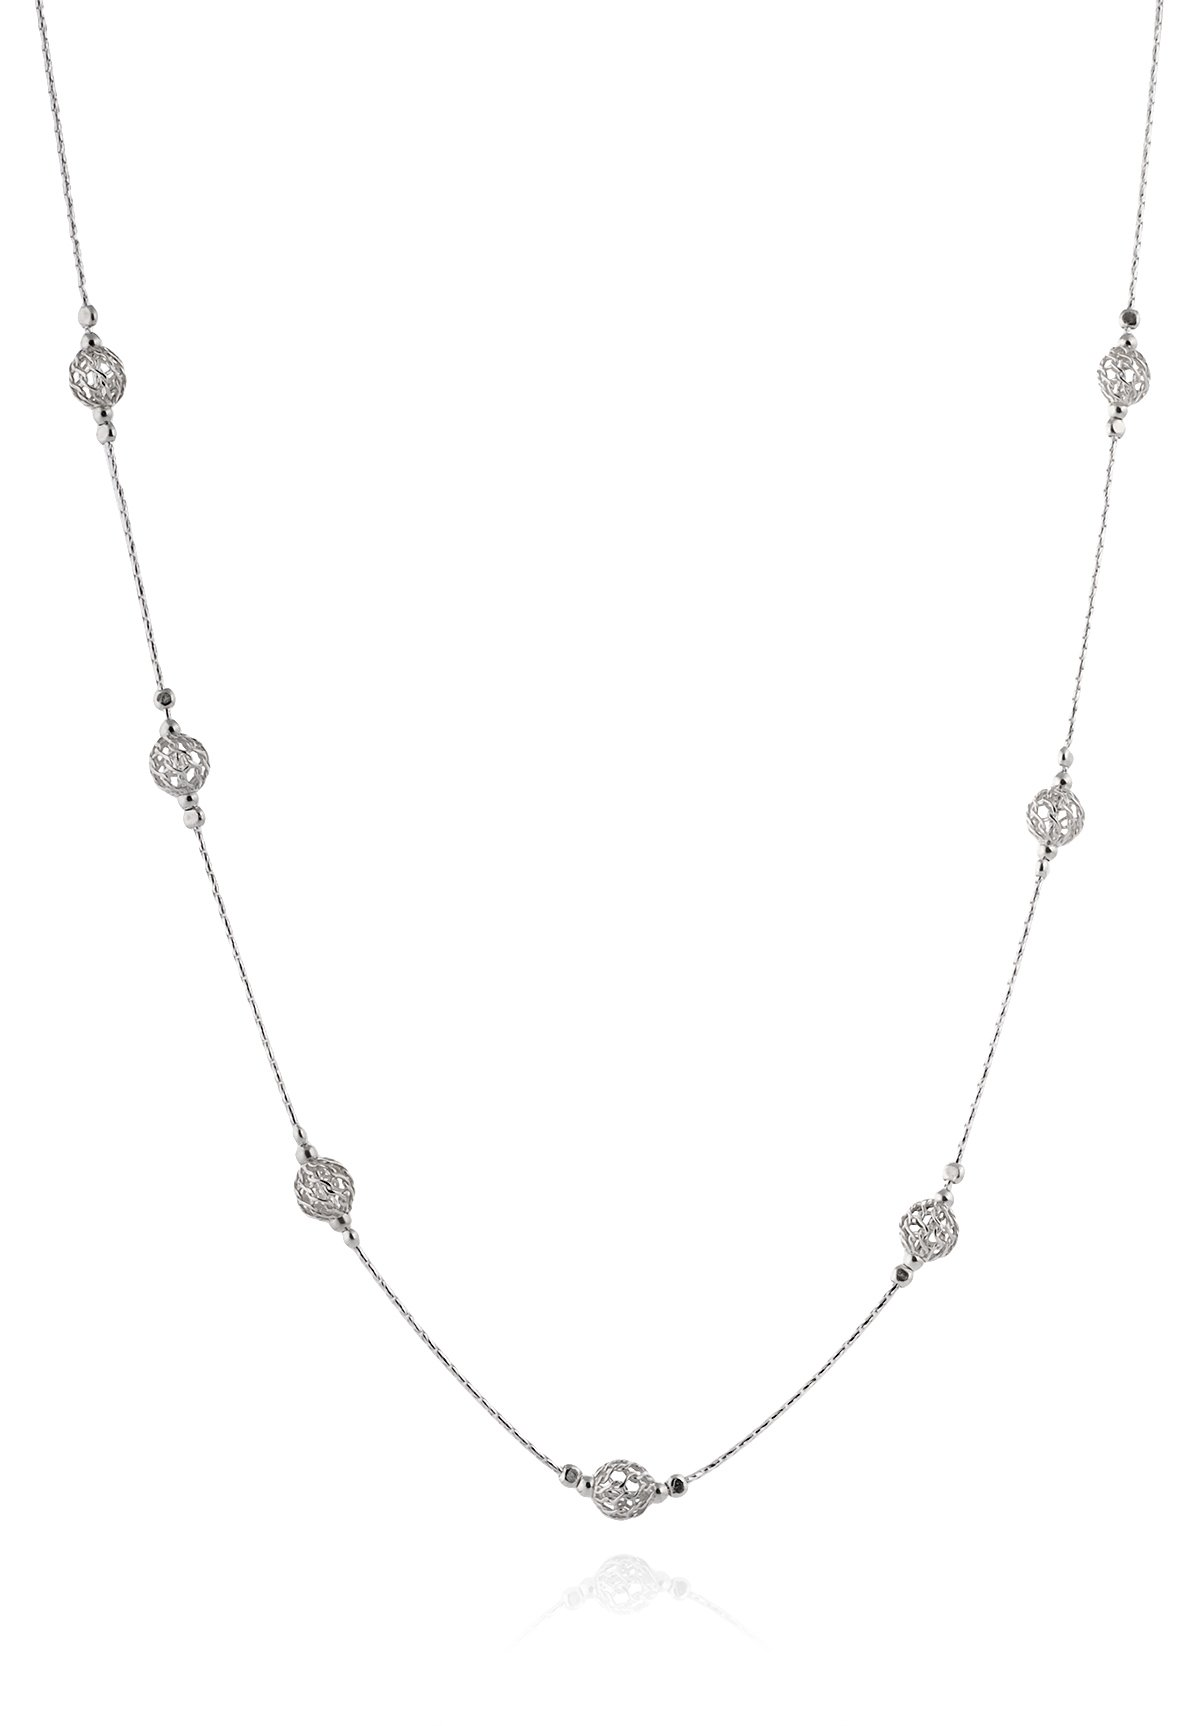 Elegant 925 Sterling Silver Necklace with Wire Mesh Net Bead Stations, 18'' + 4'' Extender